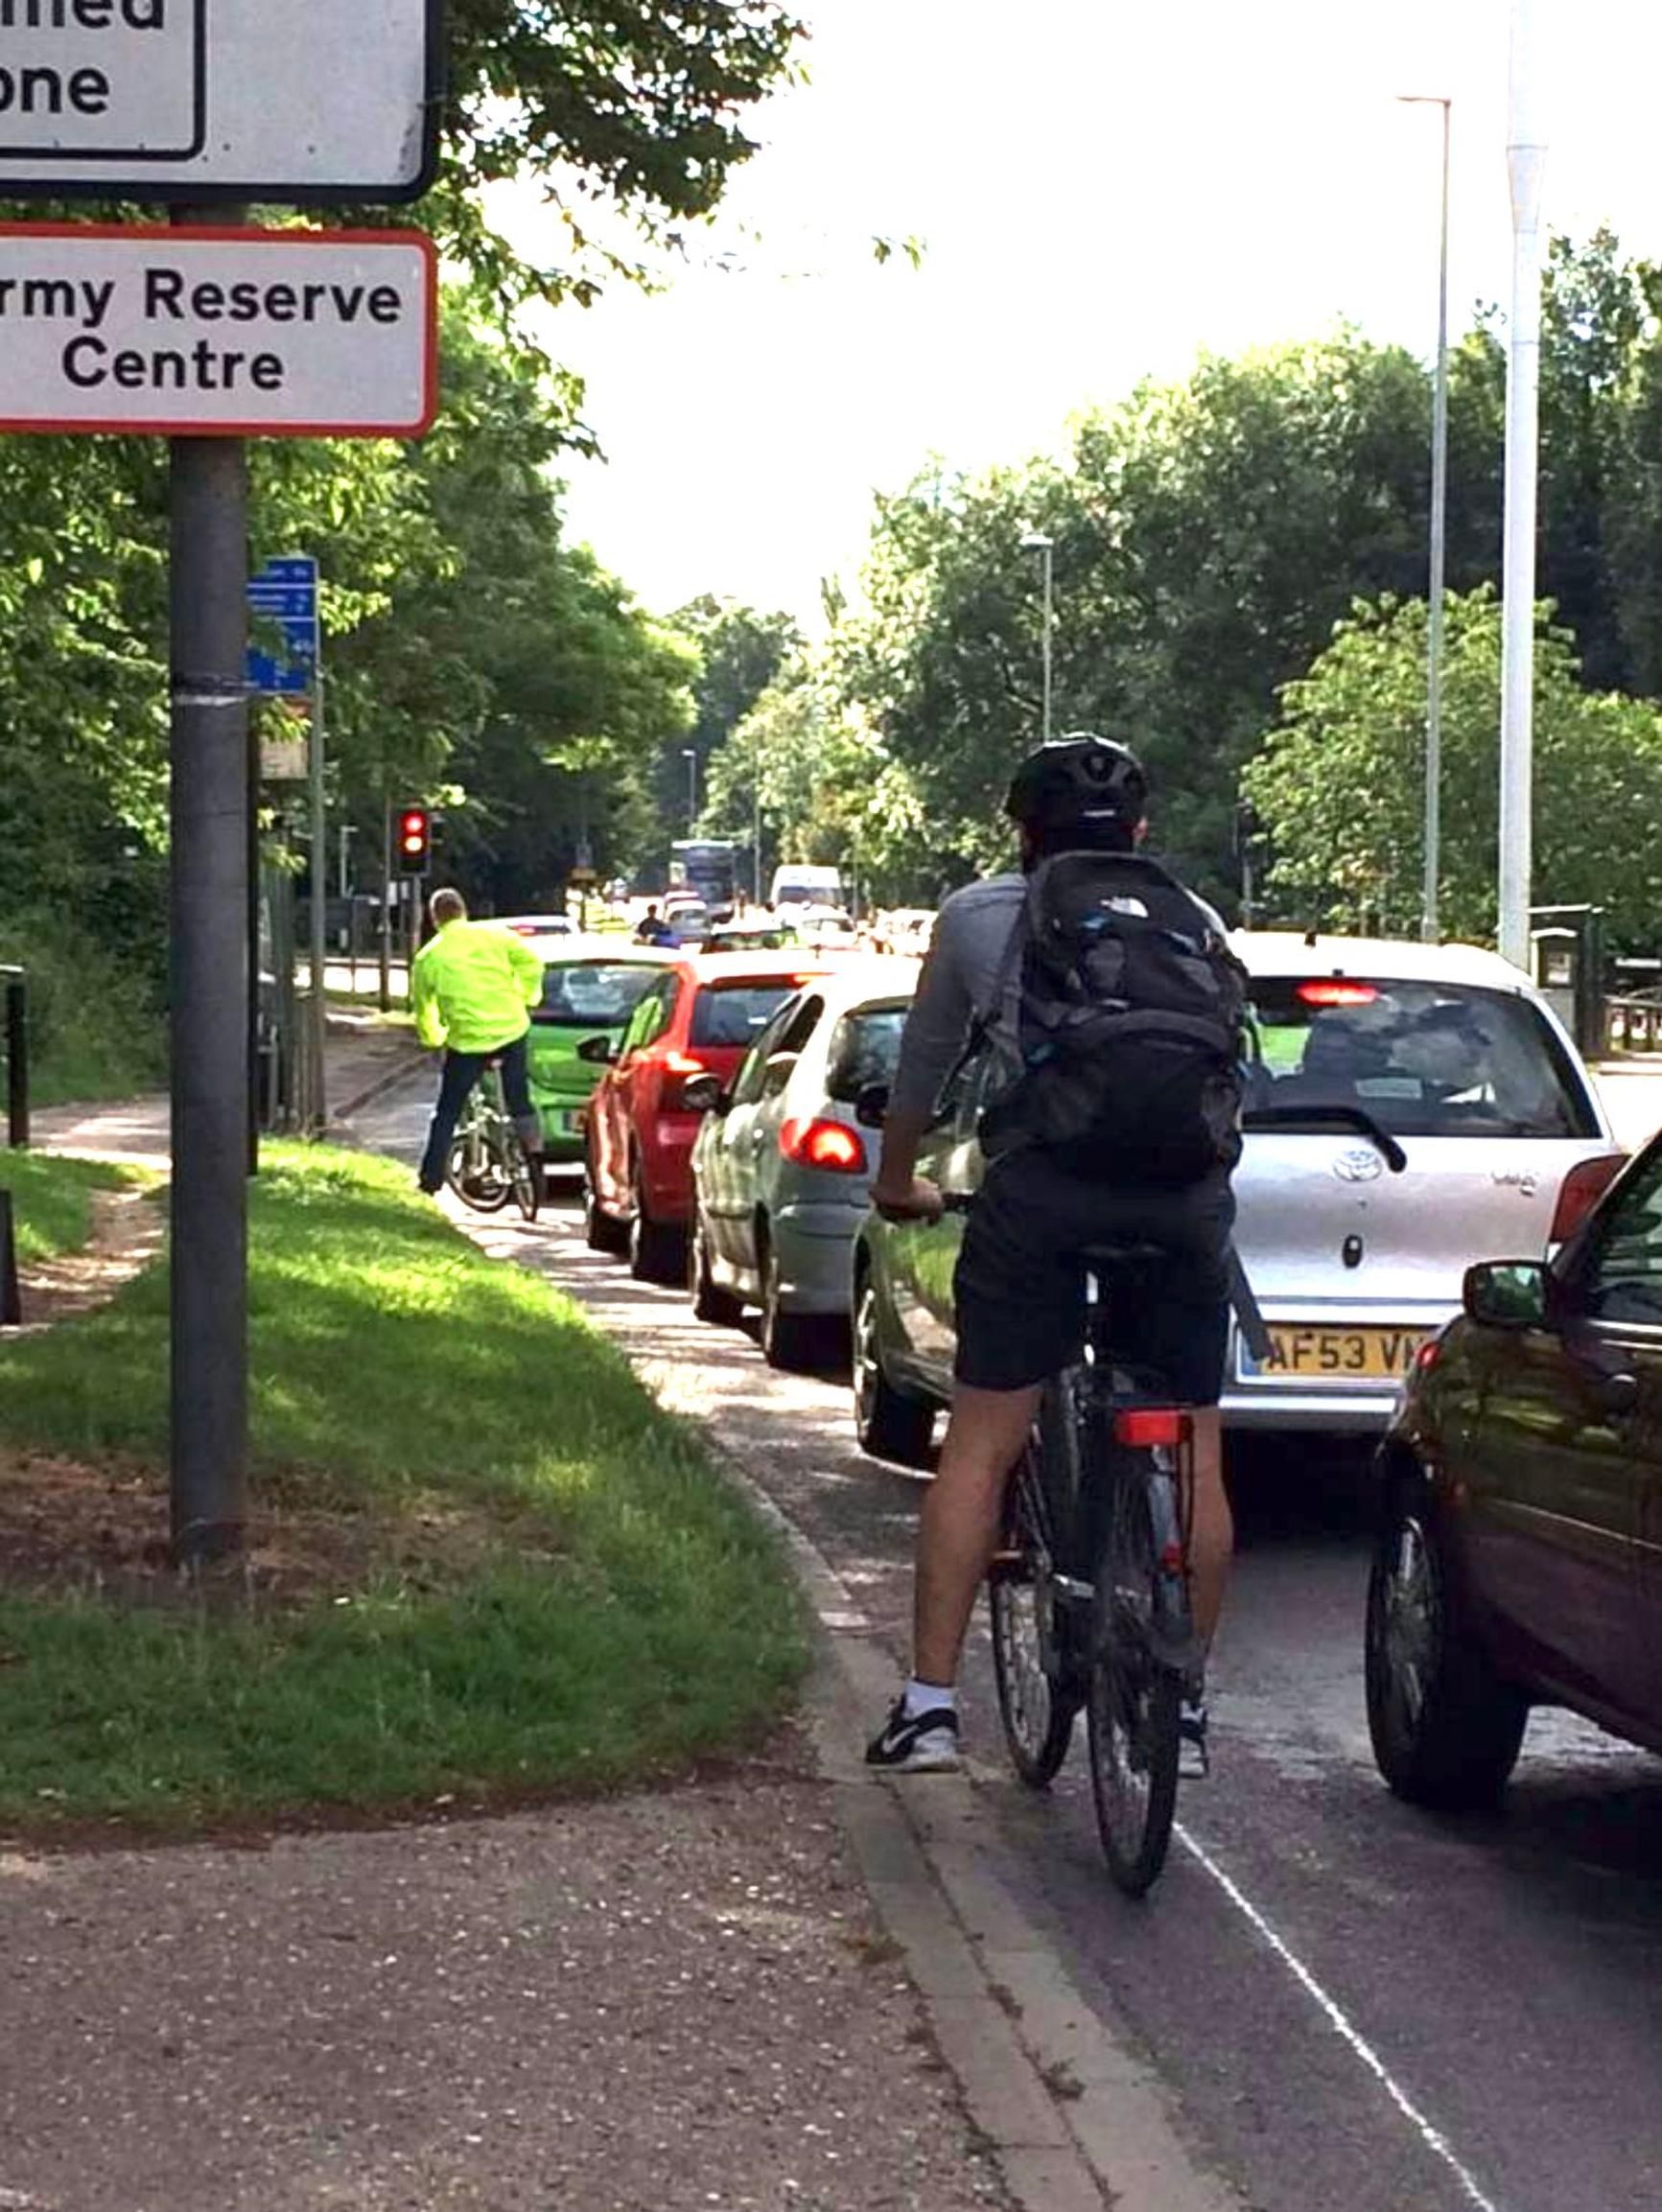 New cycleway to be installed on Fulborn Rd, Cambridge